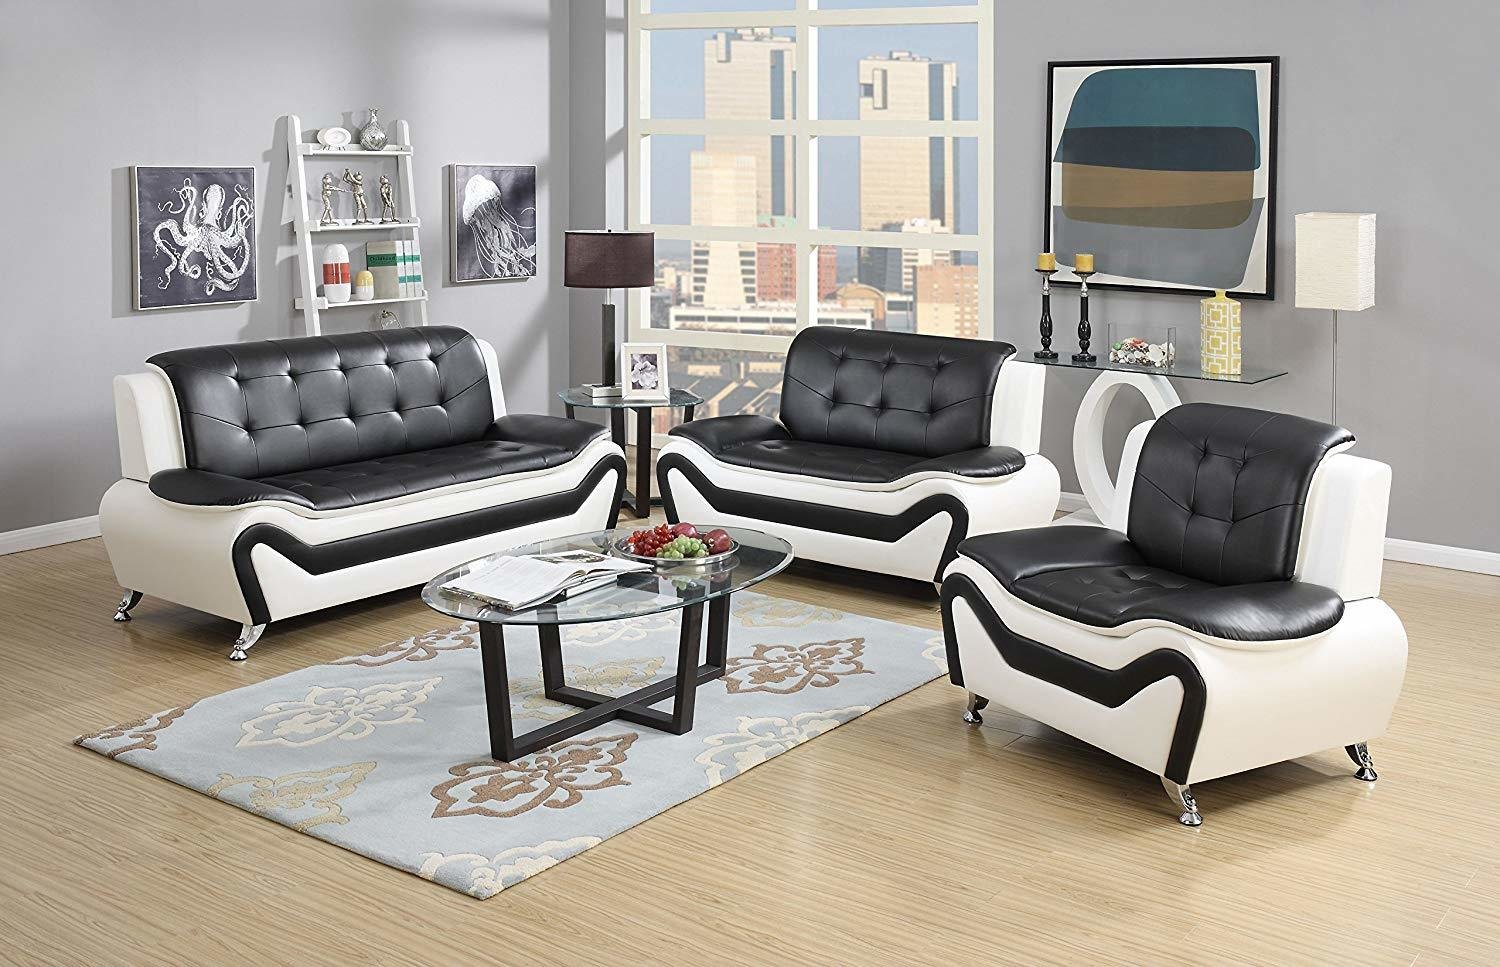 Set of 3 Pieces Modern Bonded Leather Sofa Set with Sofa